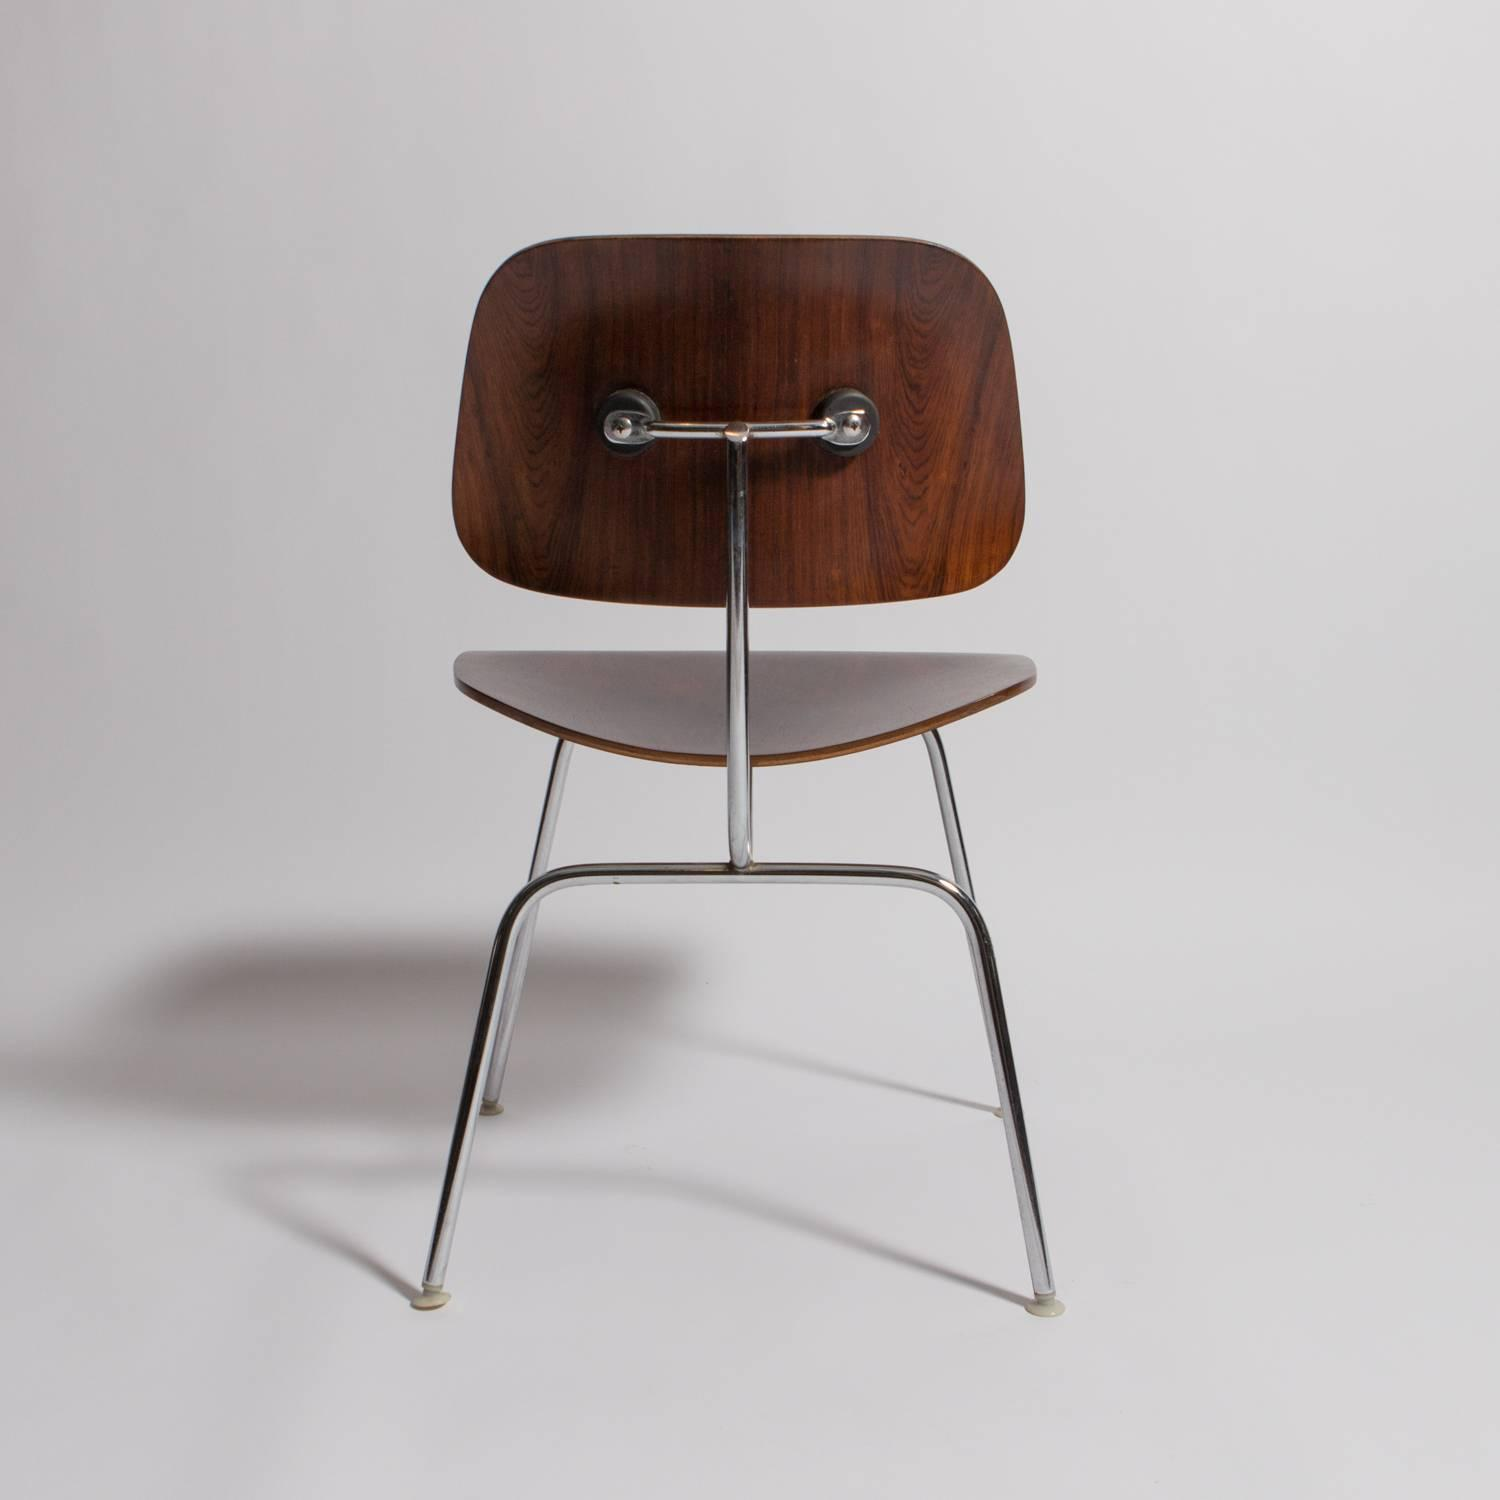 charles eames rosewood dcm chair manufactured by herman miller for